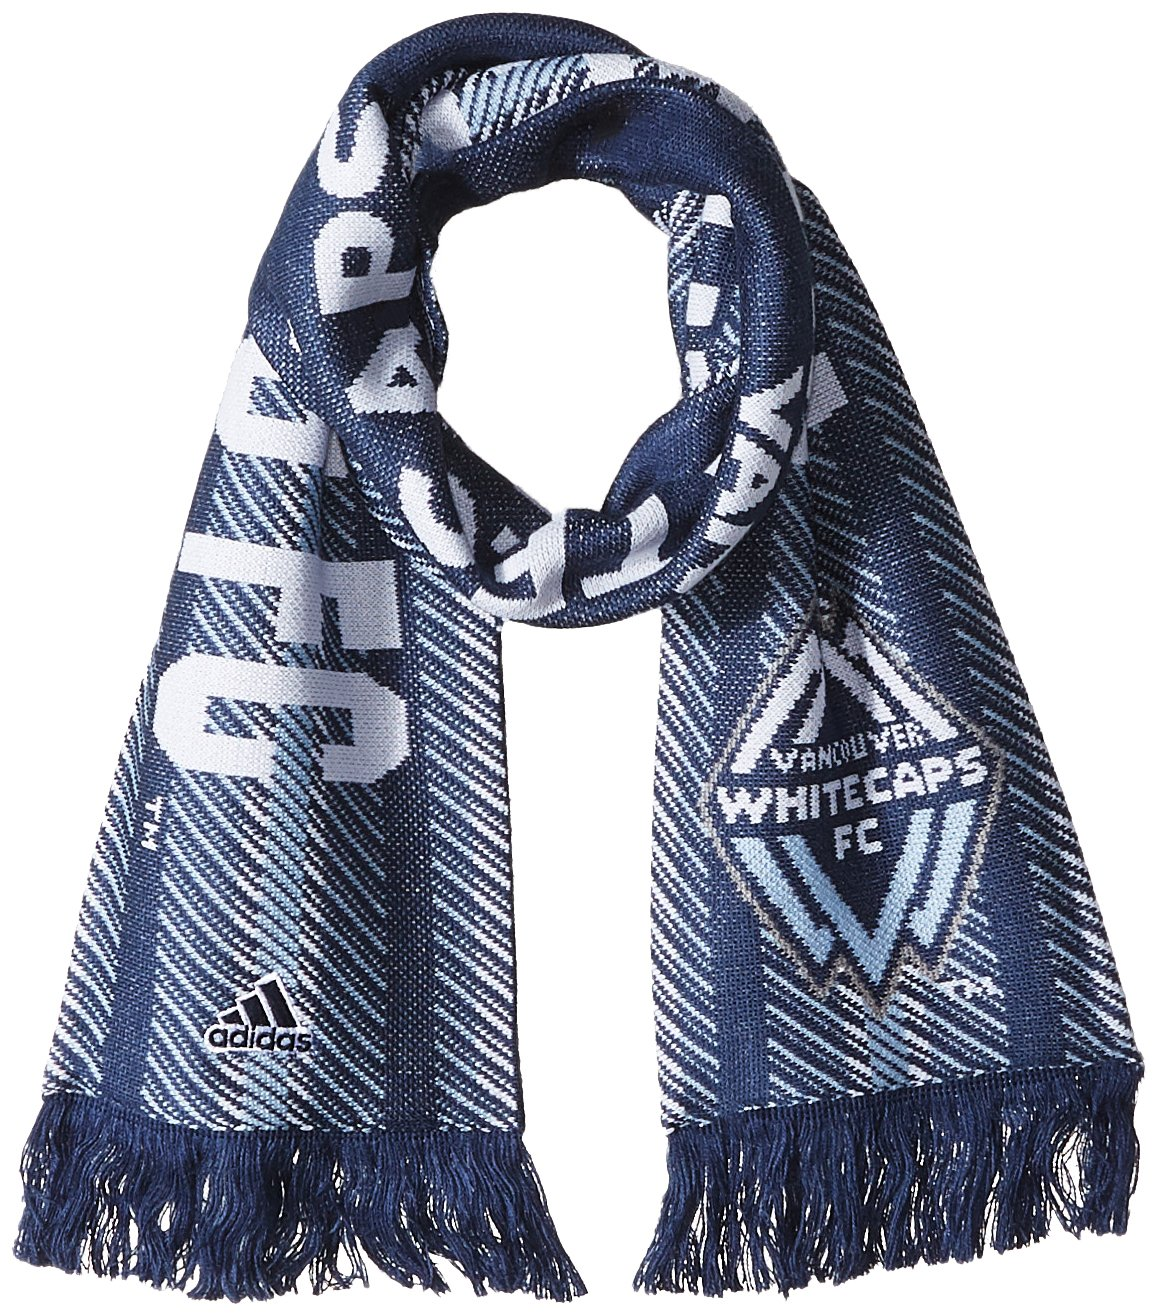 adidas MLS Vancouver Whitecaps Jacquard Scarf with Block Name, One Size, Navy